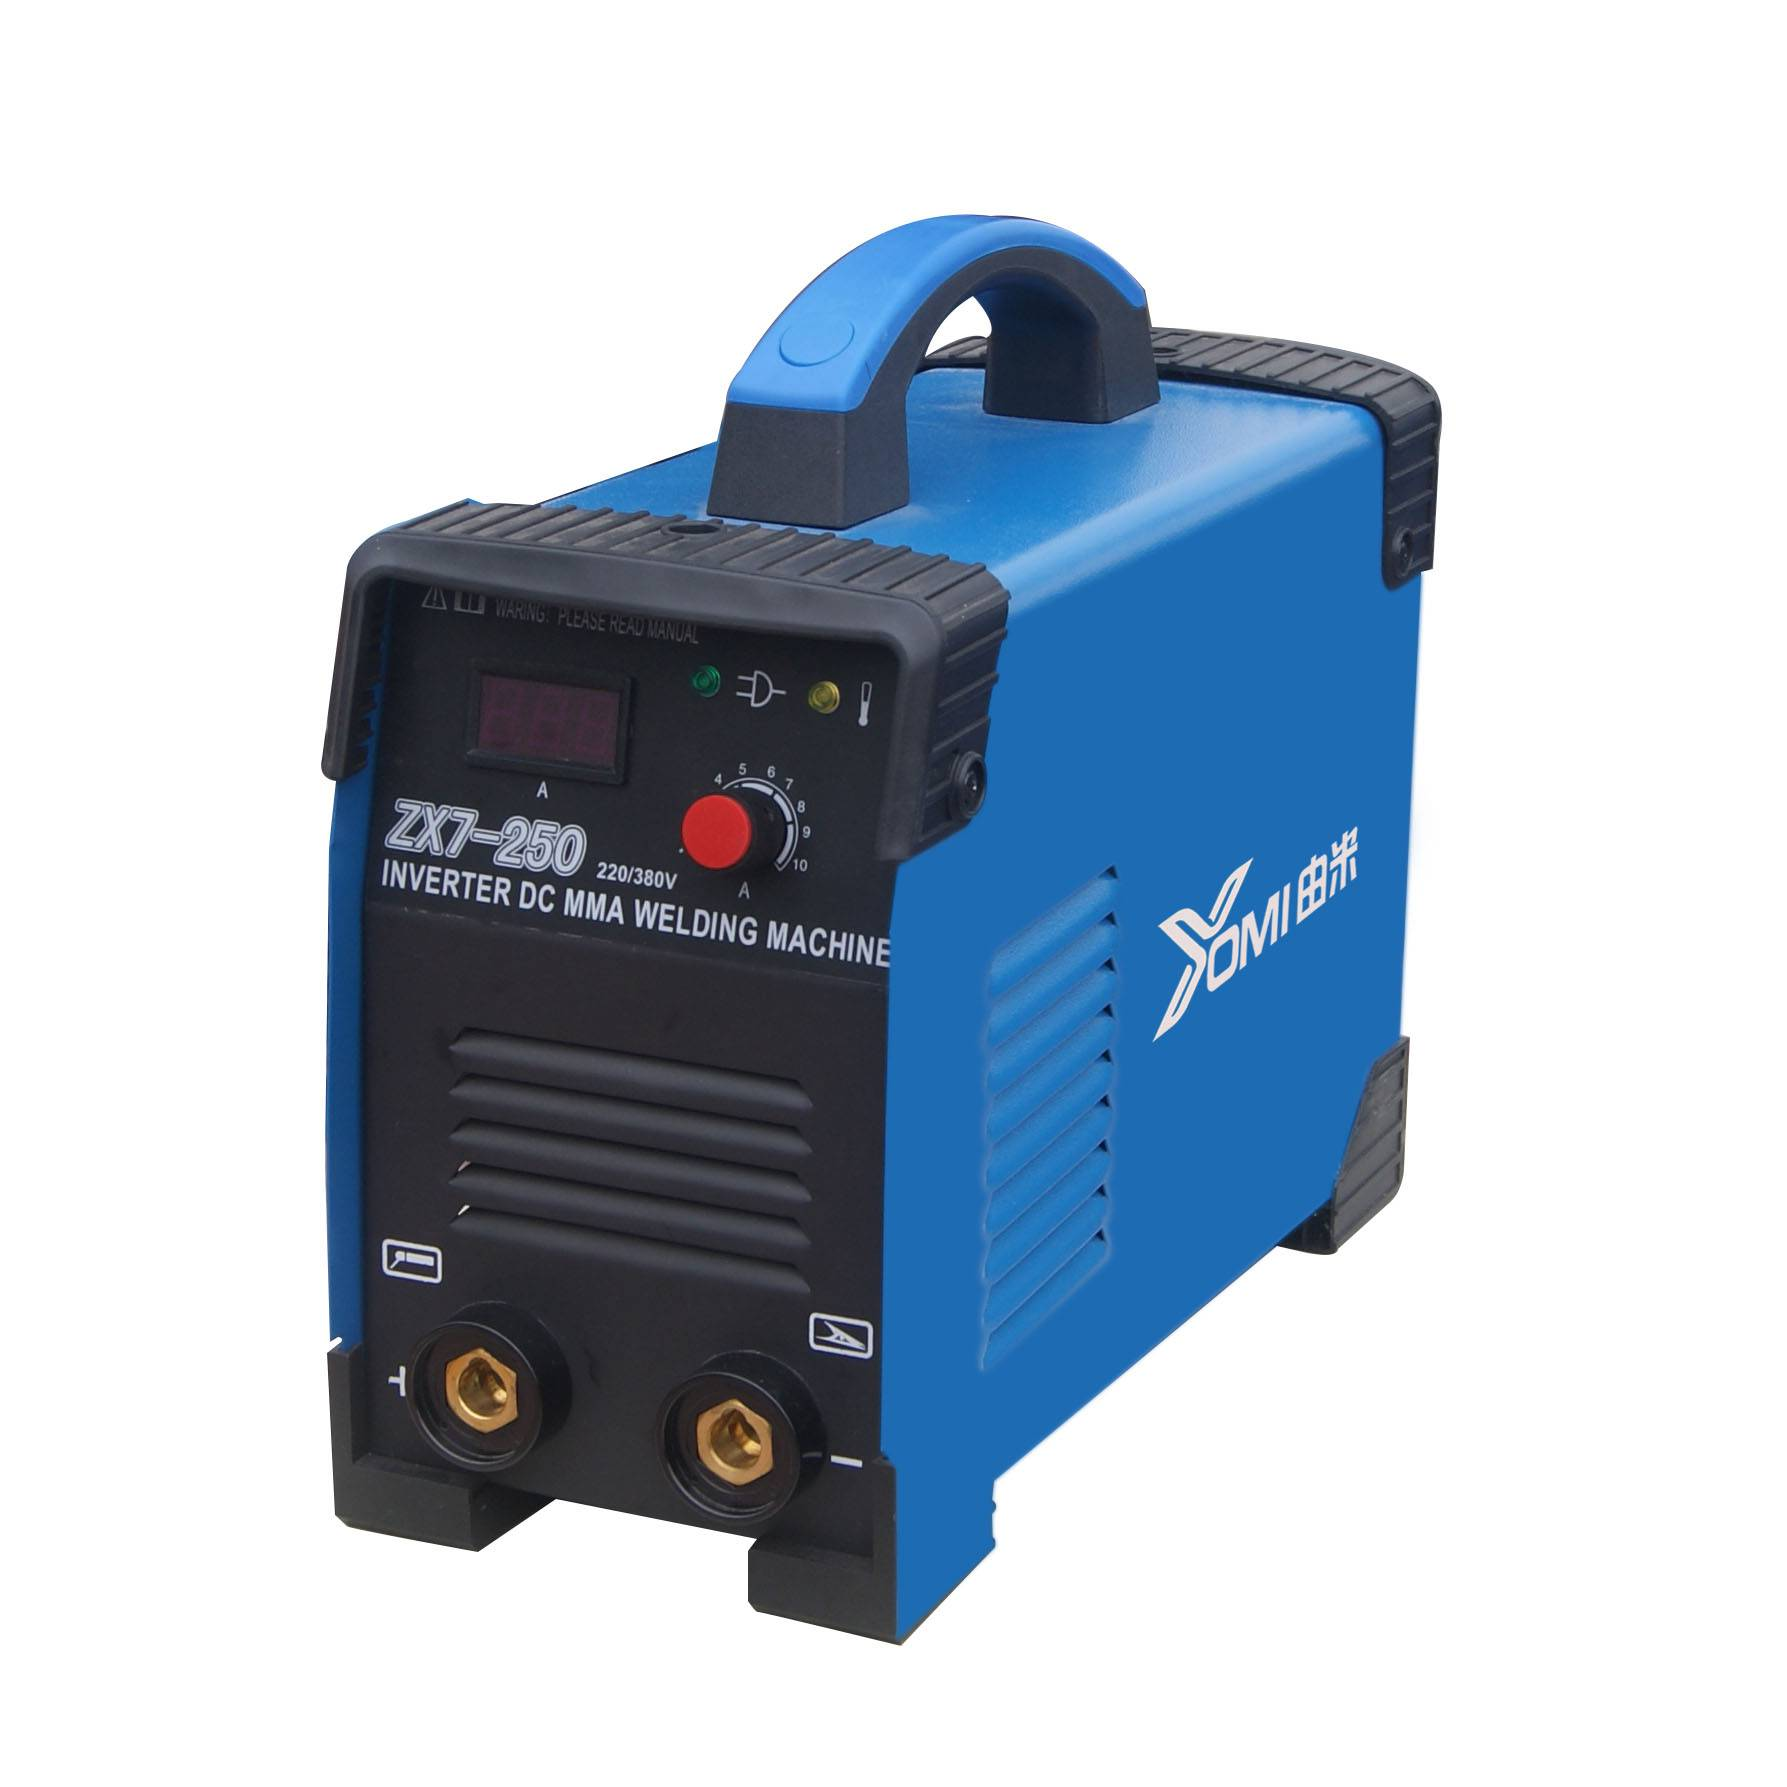 8 Years Exporter Intelligent Factory Production Line -